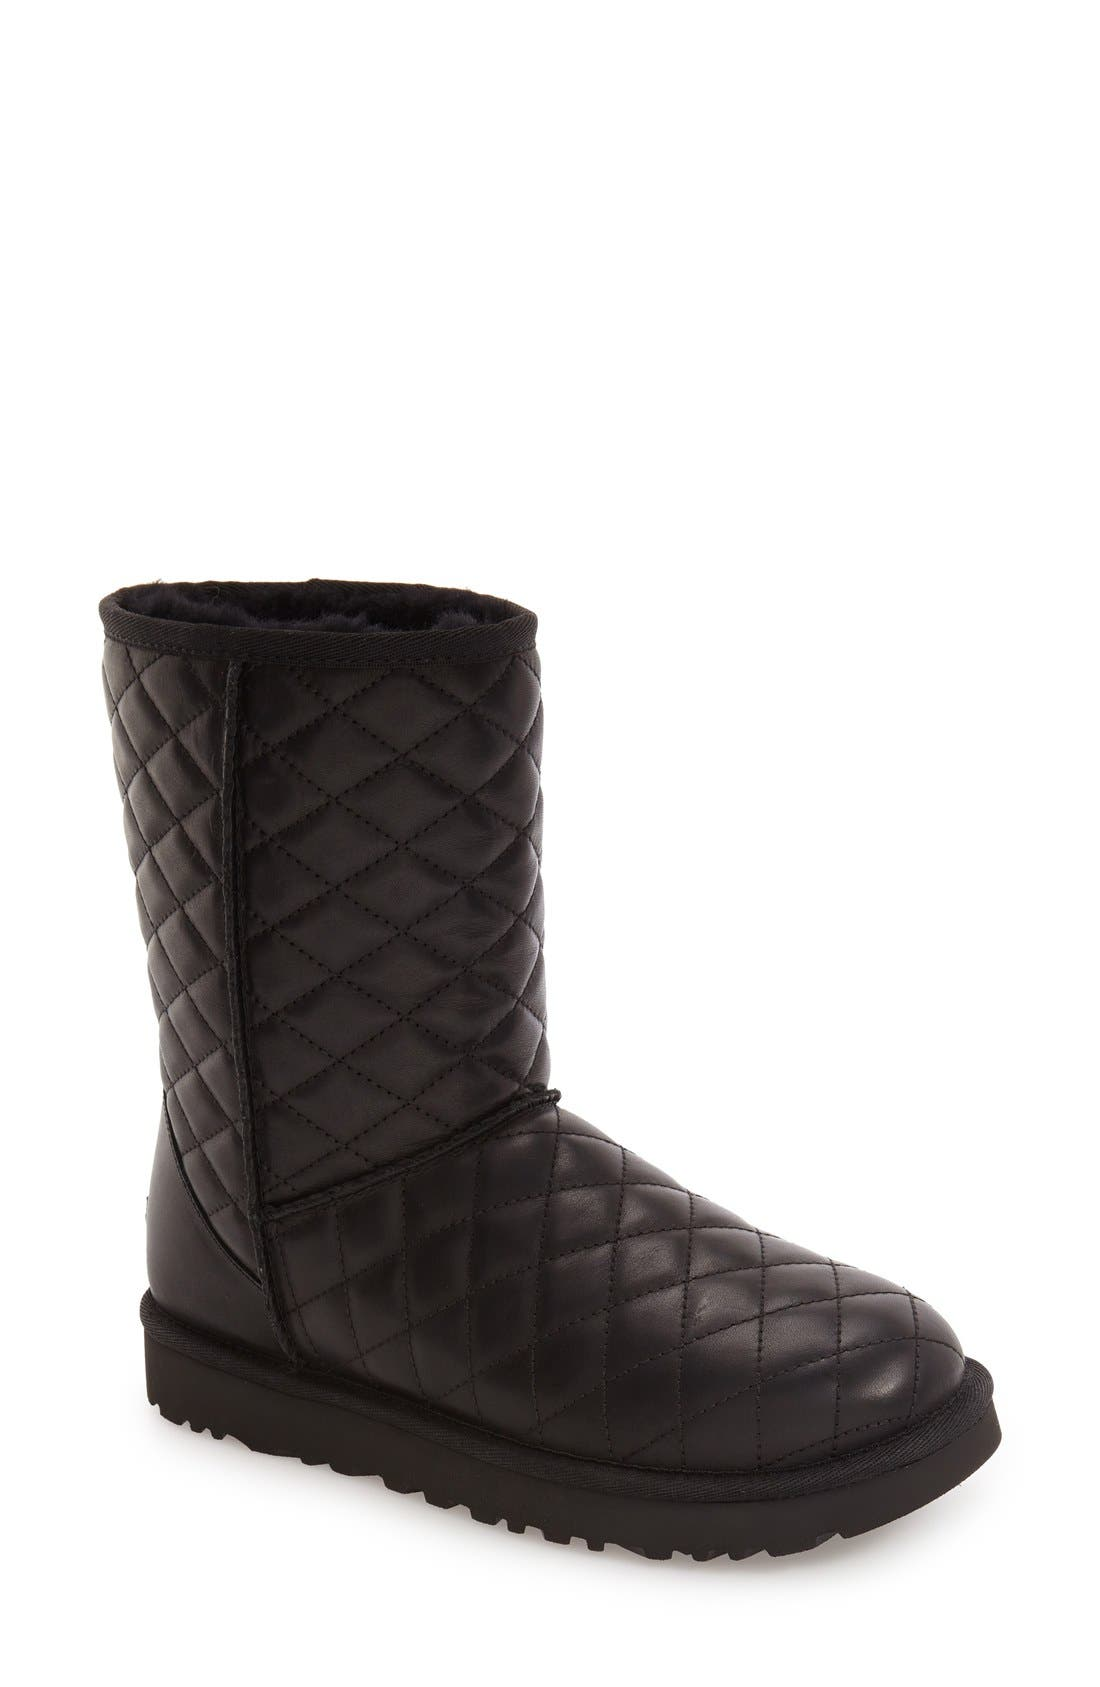 Alternate Image 1 Selected - UGG® Classic Short Quilted Boot (Women)